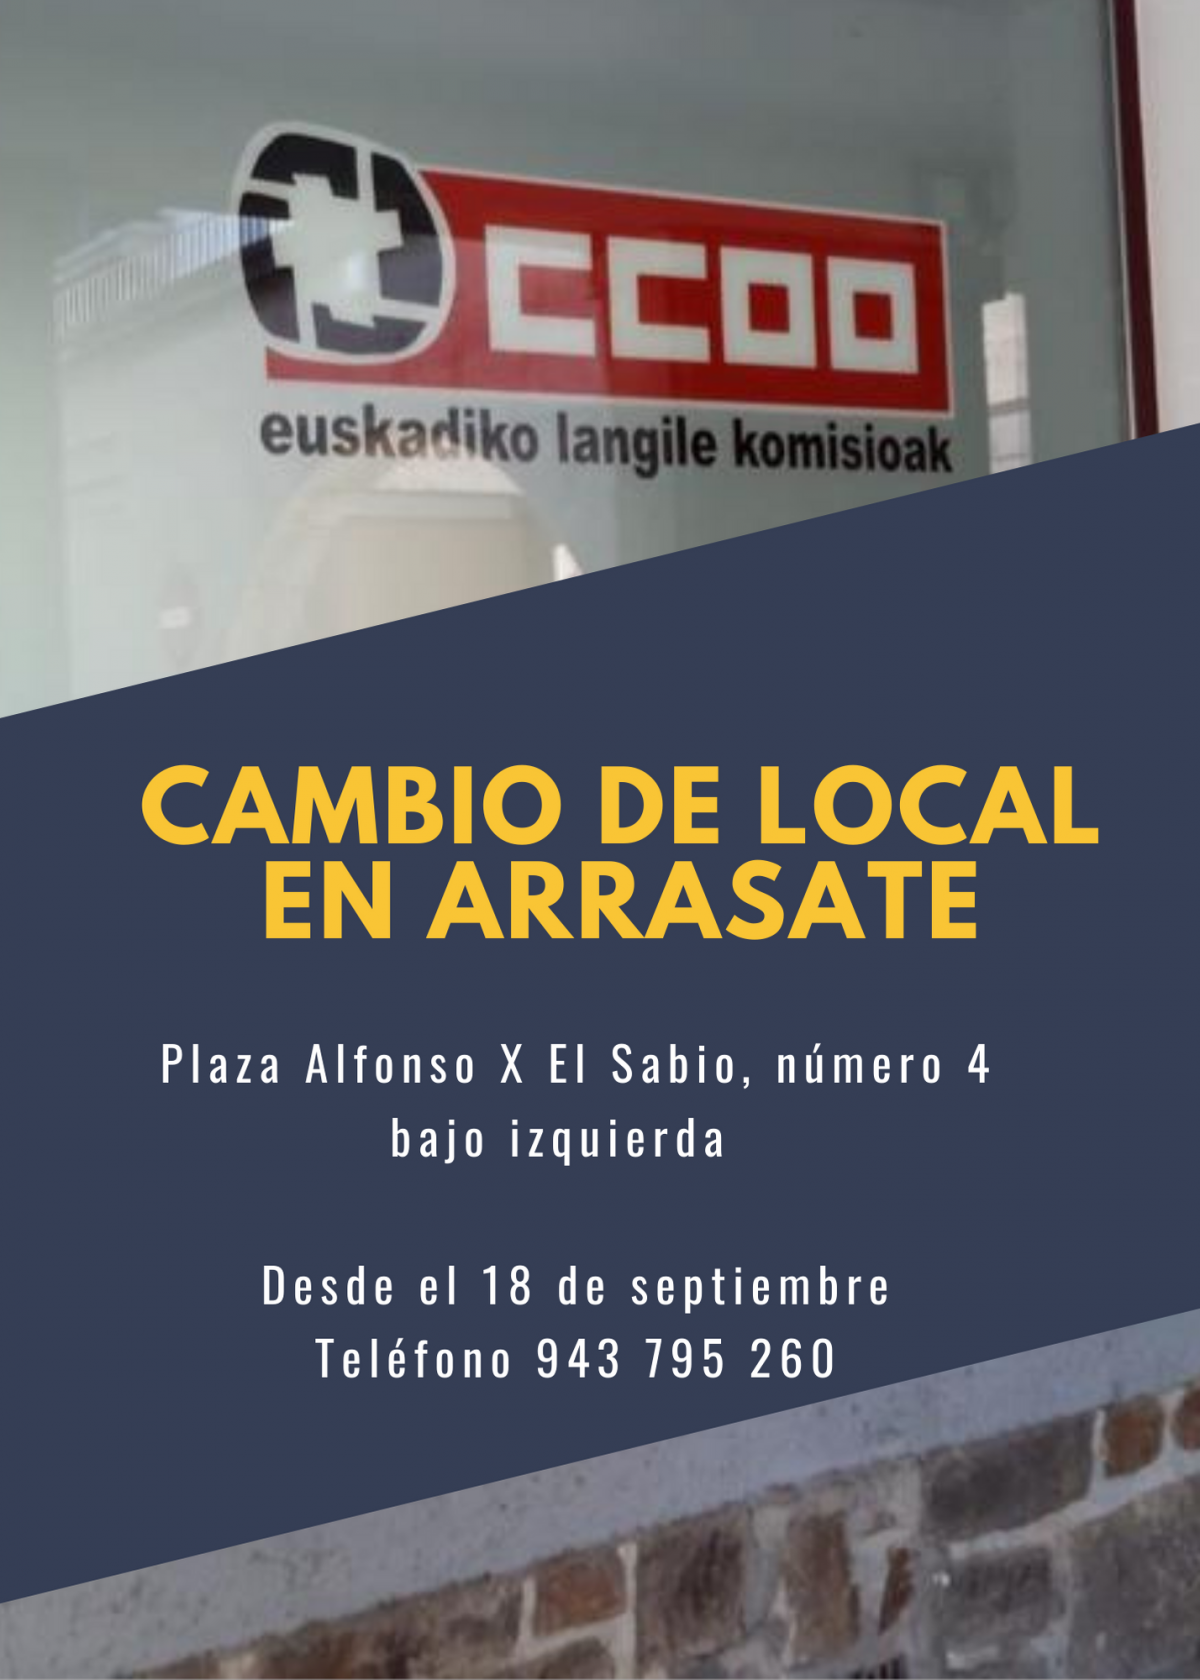 Cambio de local en Arrasate